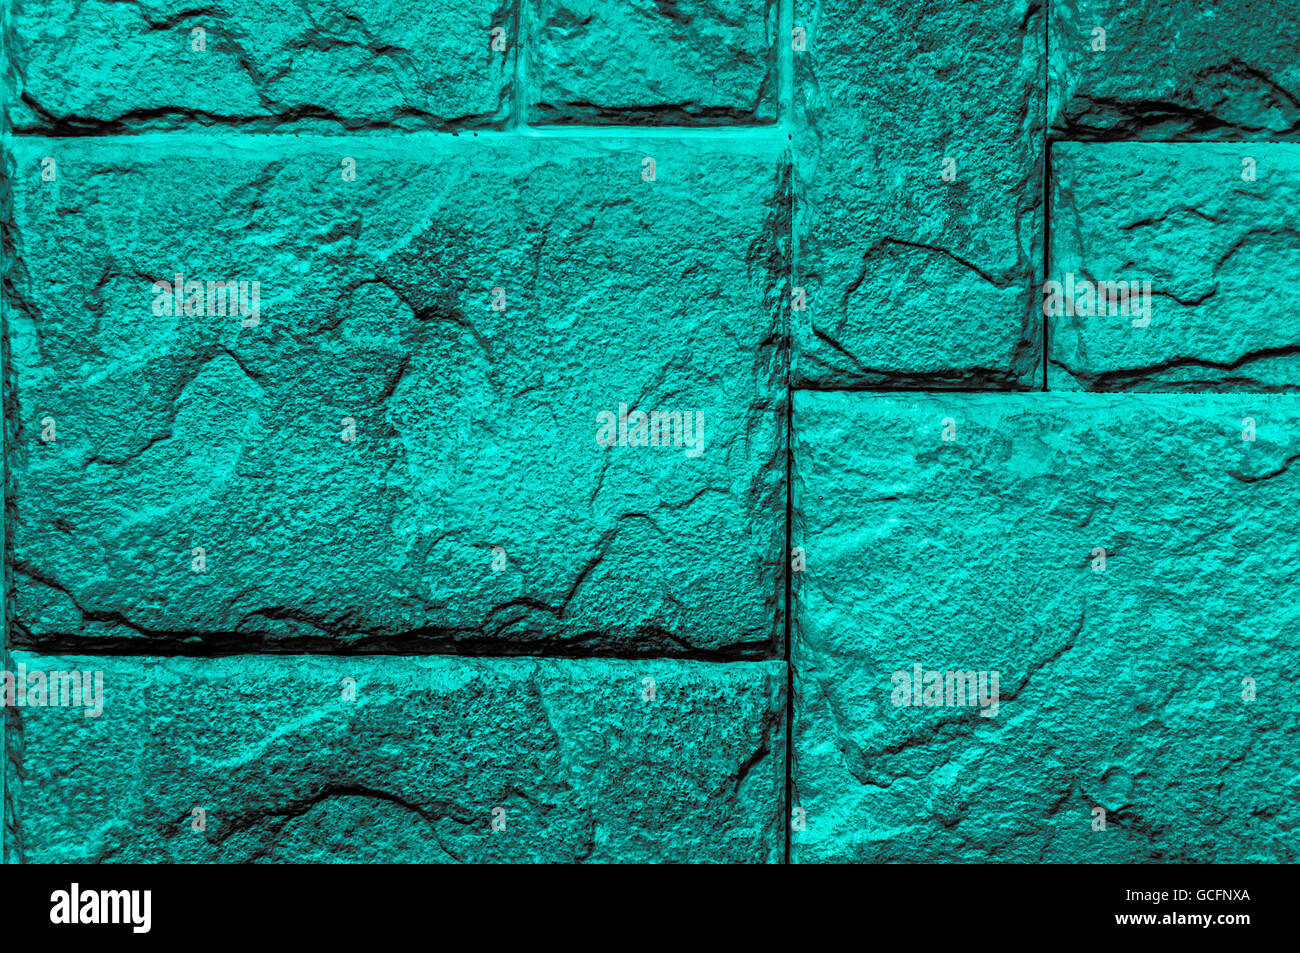 Turquoise Brick Wallpaper Brick Wall Turquoise Wall Stock Photos And Brick Wall